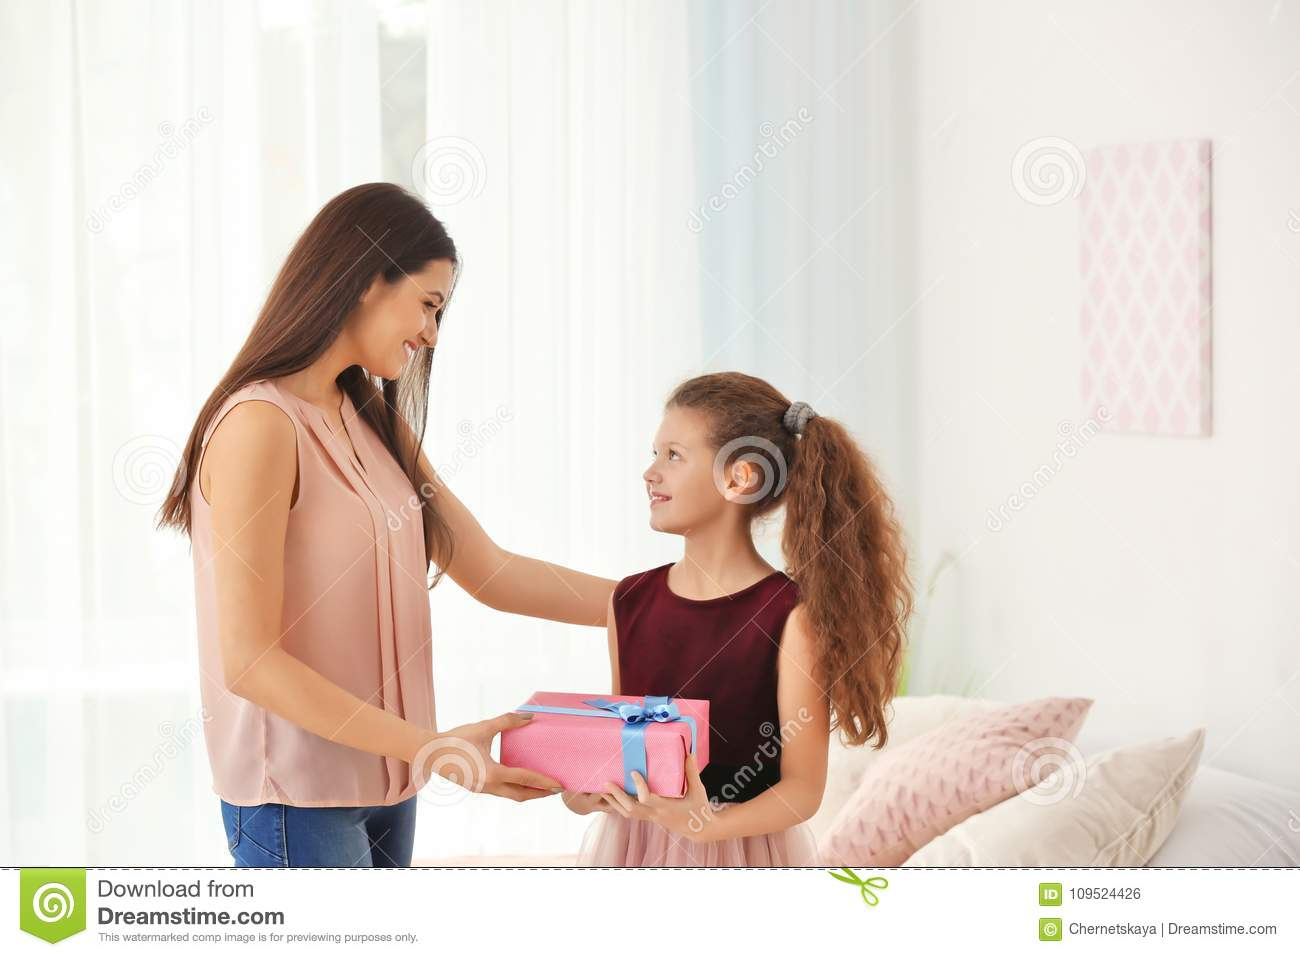 Cute little girl giving gift box to her mom indoors.